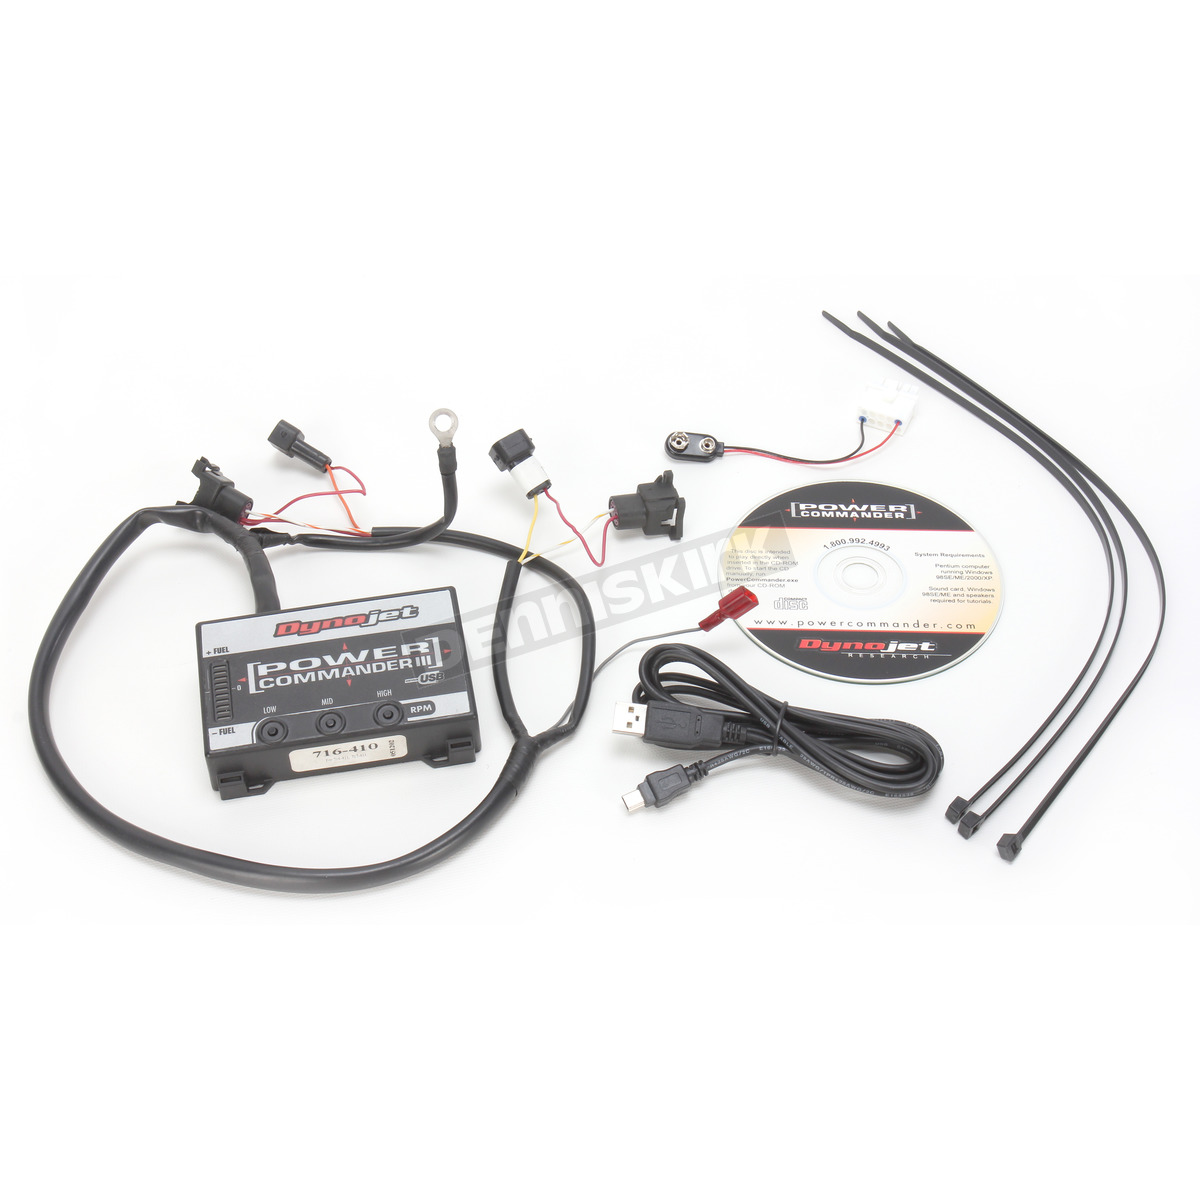 Dynojet Power Commander Iii Usb Sport Bike Motorcycle